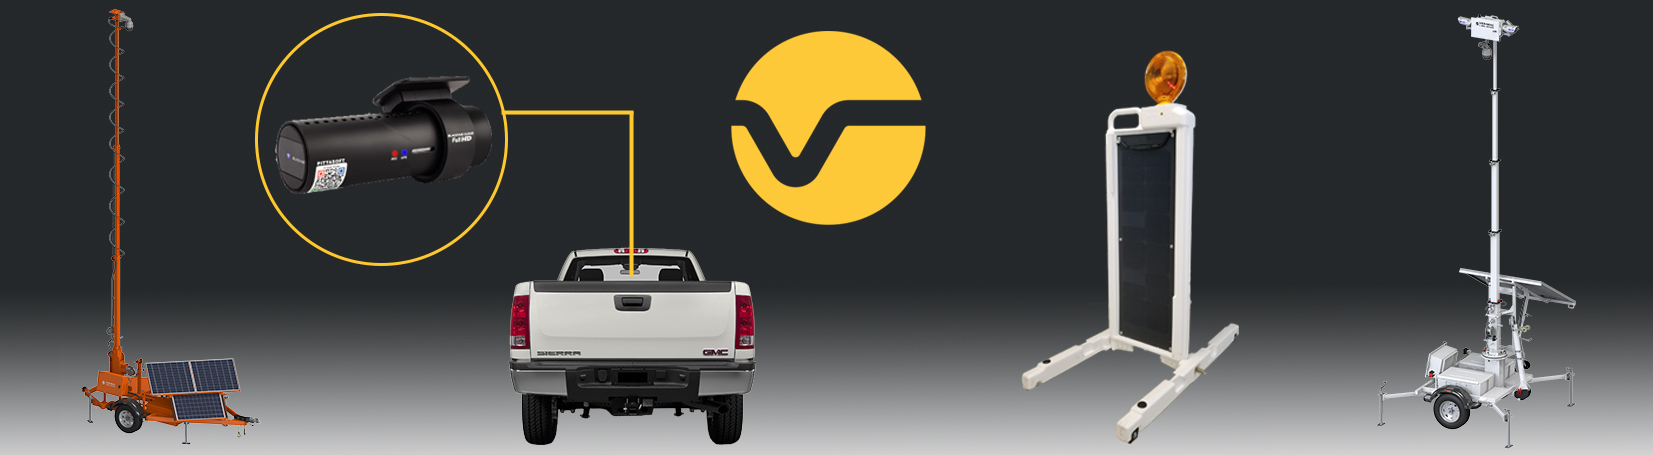 Trailed-Mounted Cameras & Portable Speed Sensors | Ver-Mac